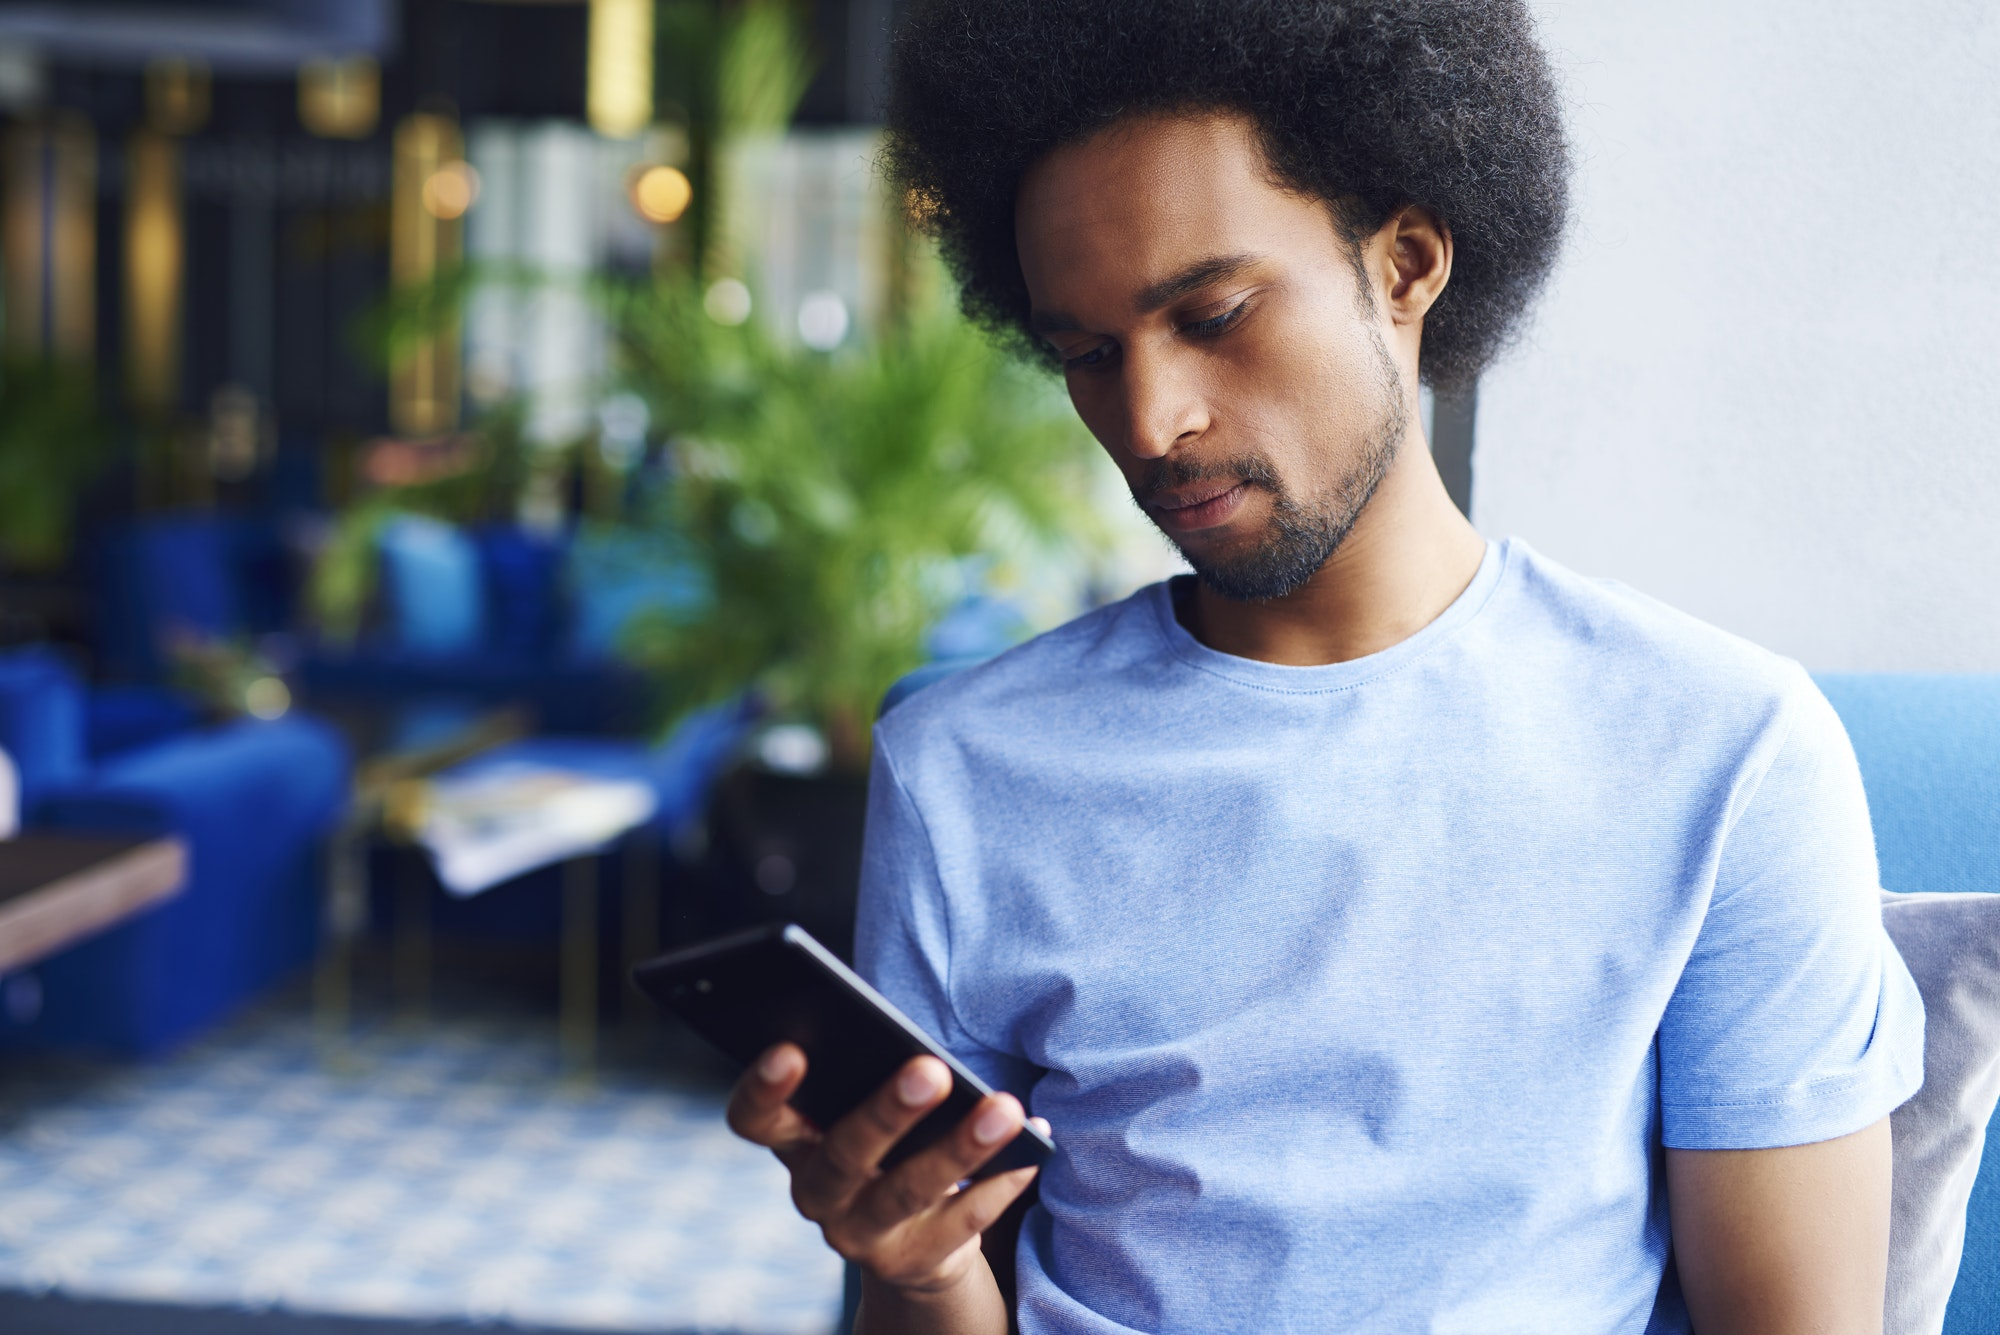 African american man using a mobile phone